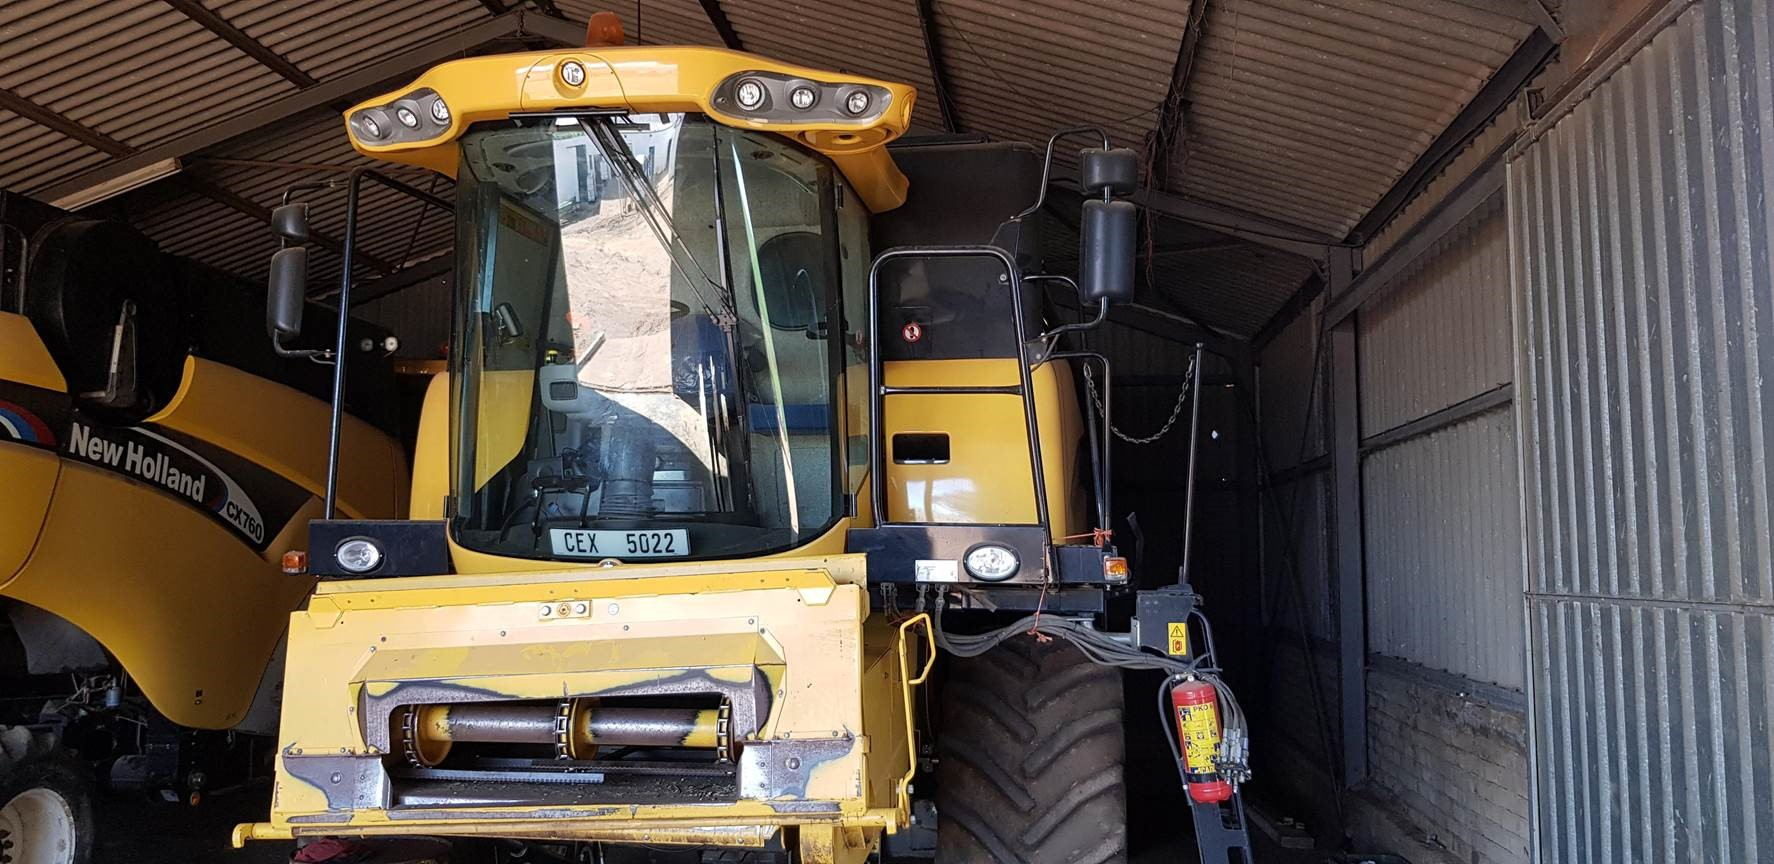 New Holland Used Harvester for sale